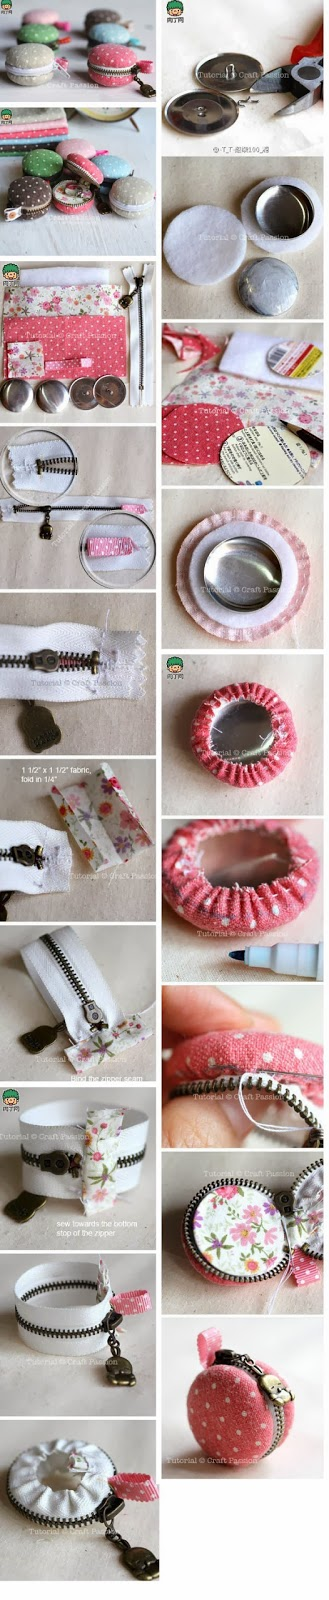 How to Sew a Zipper Pocket Purse